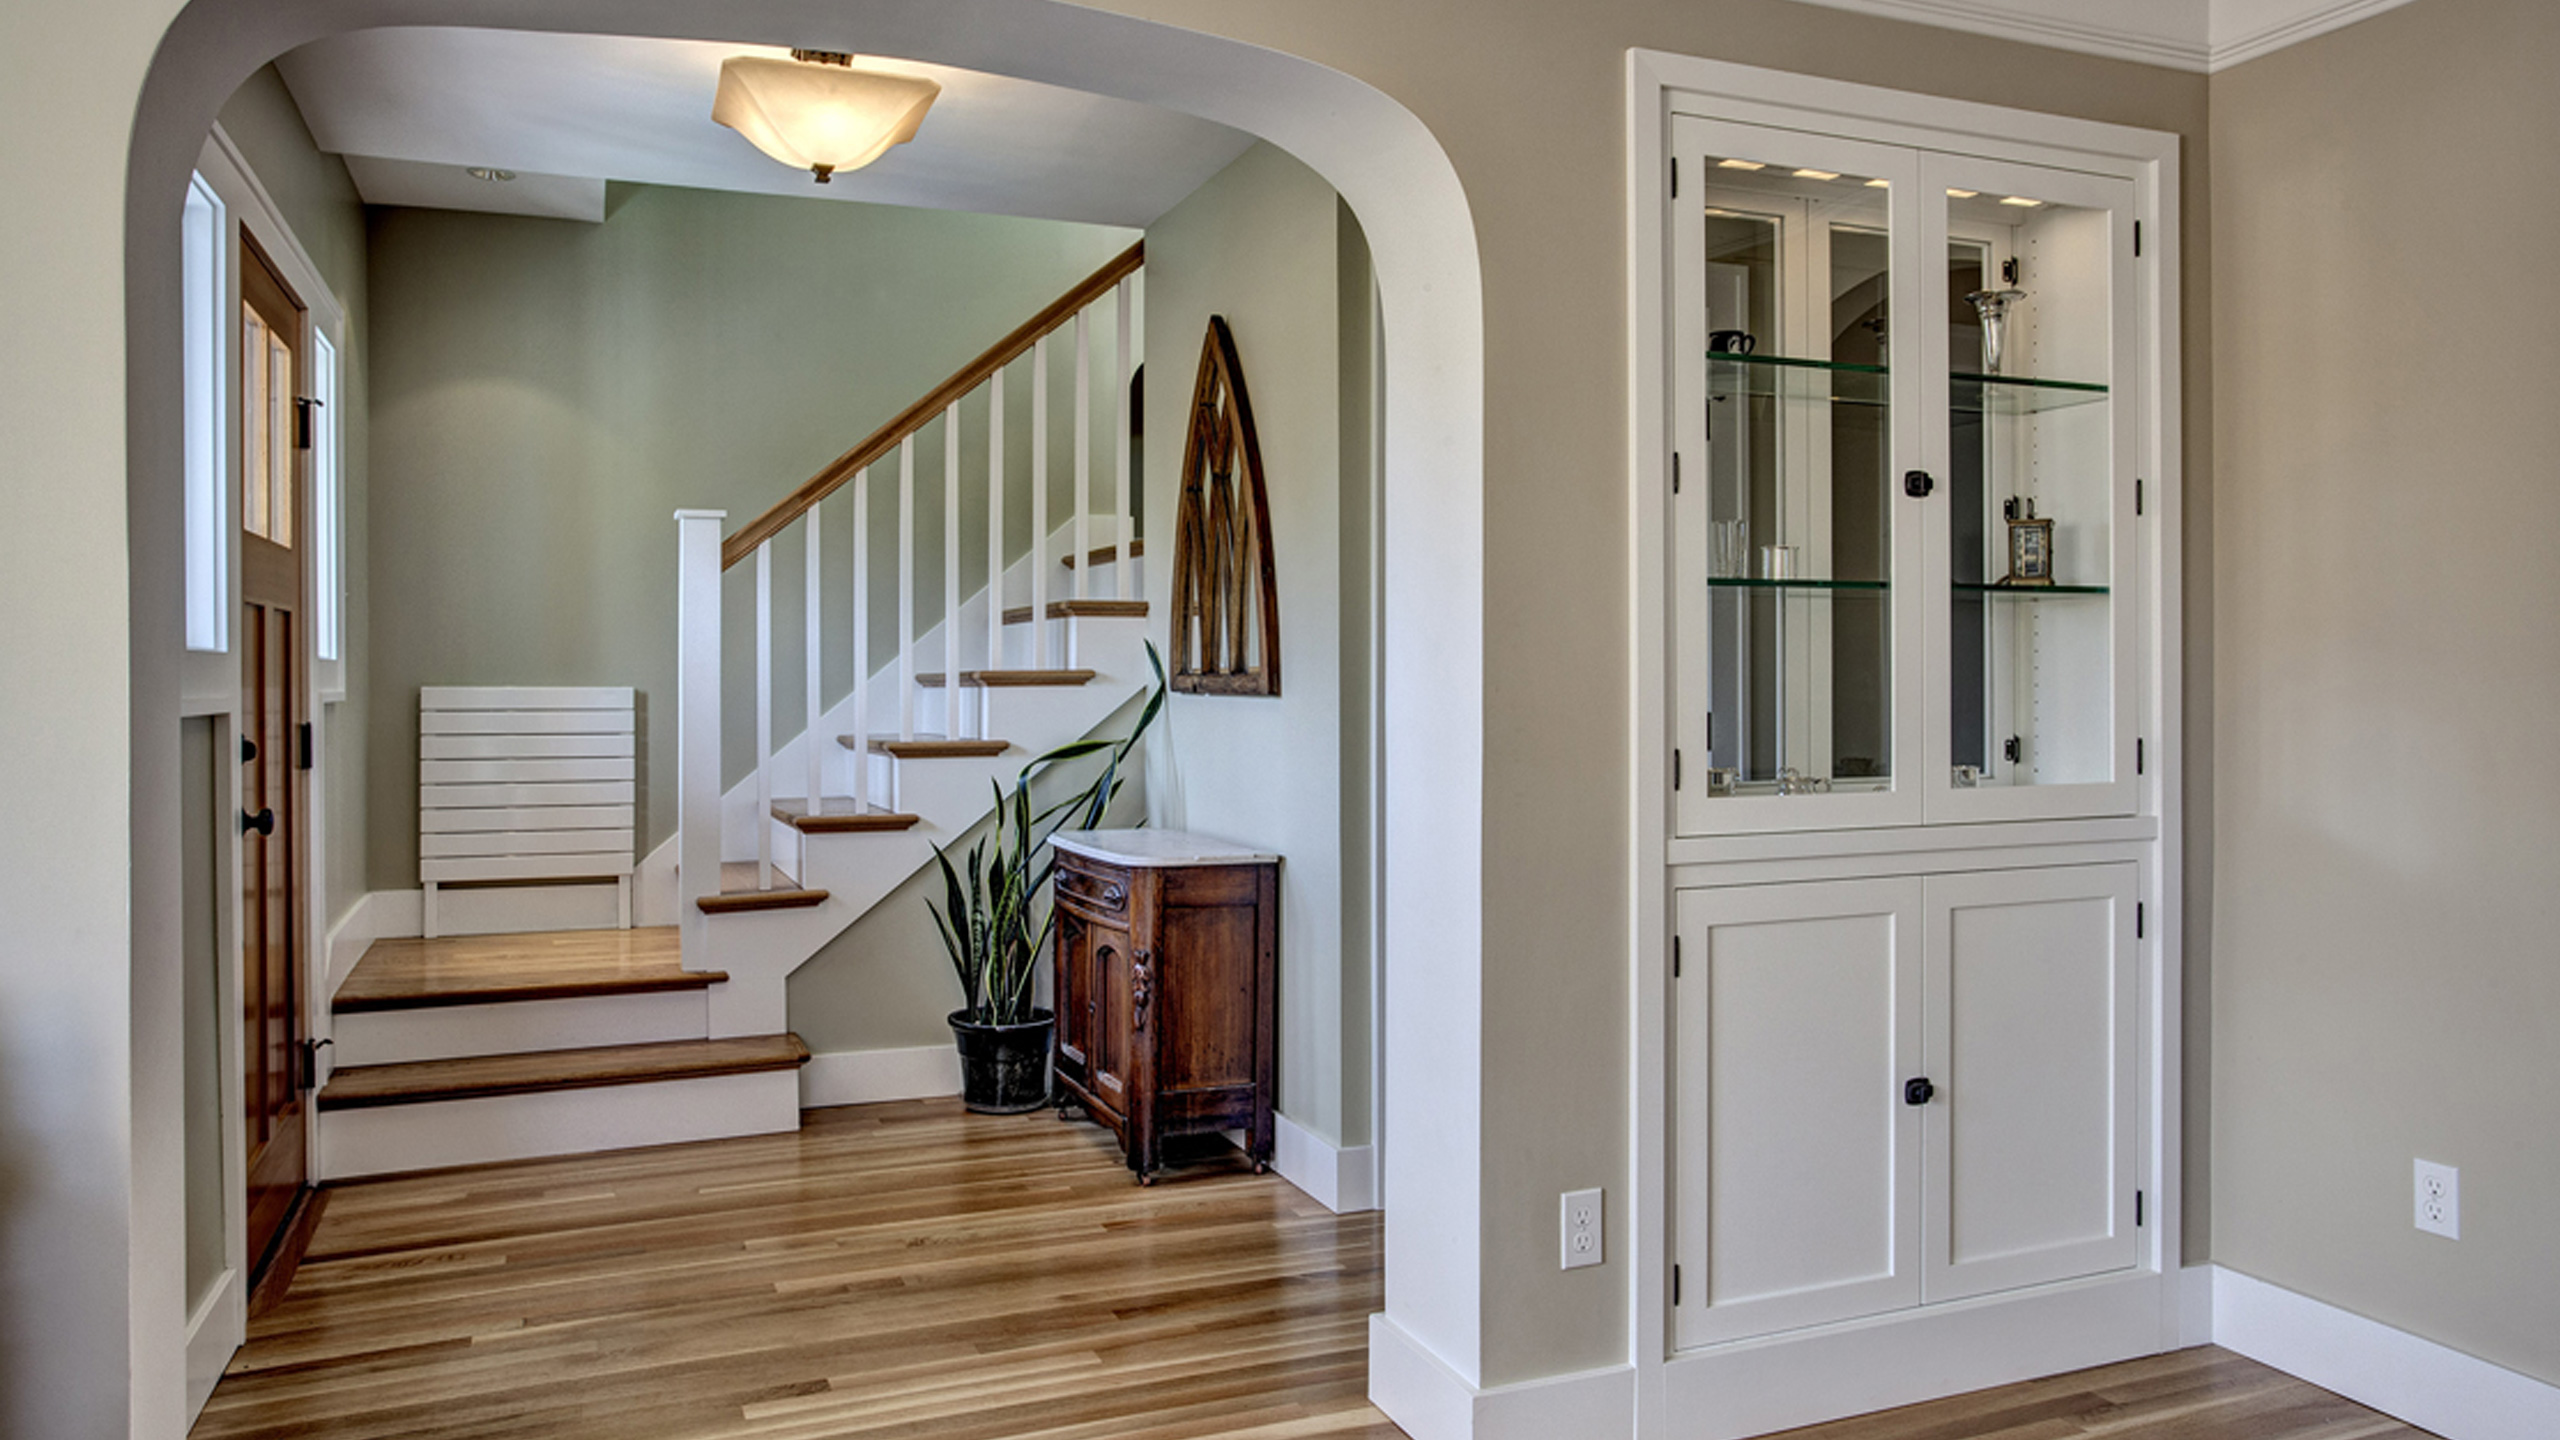 The Ups and Downs of Staircase Design – Board & Vellum